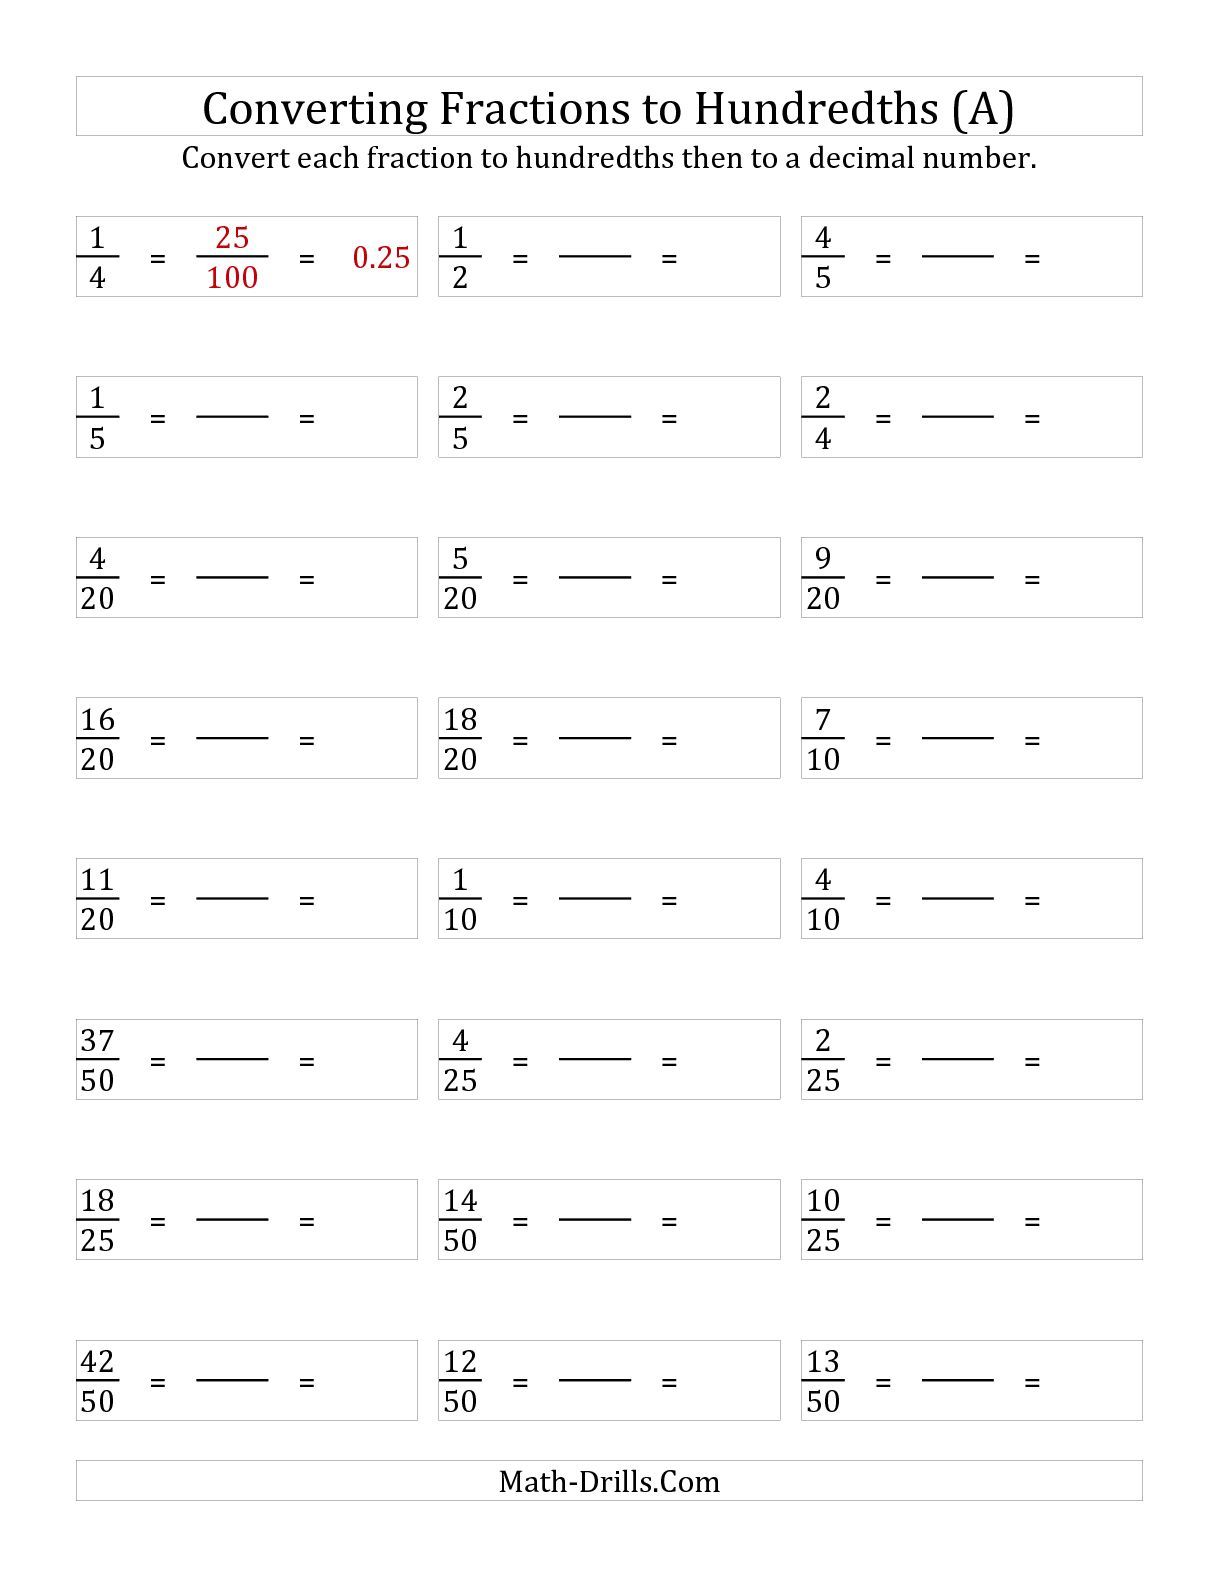 Mathheet For Converting Fractions To Decimals70697 Myscres Decimals Convert Fraction Converting Fractions Fractions To Decimals Worksheet Fraction Lesson Plans